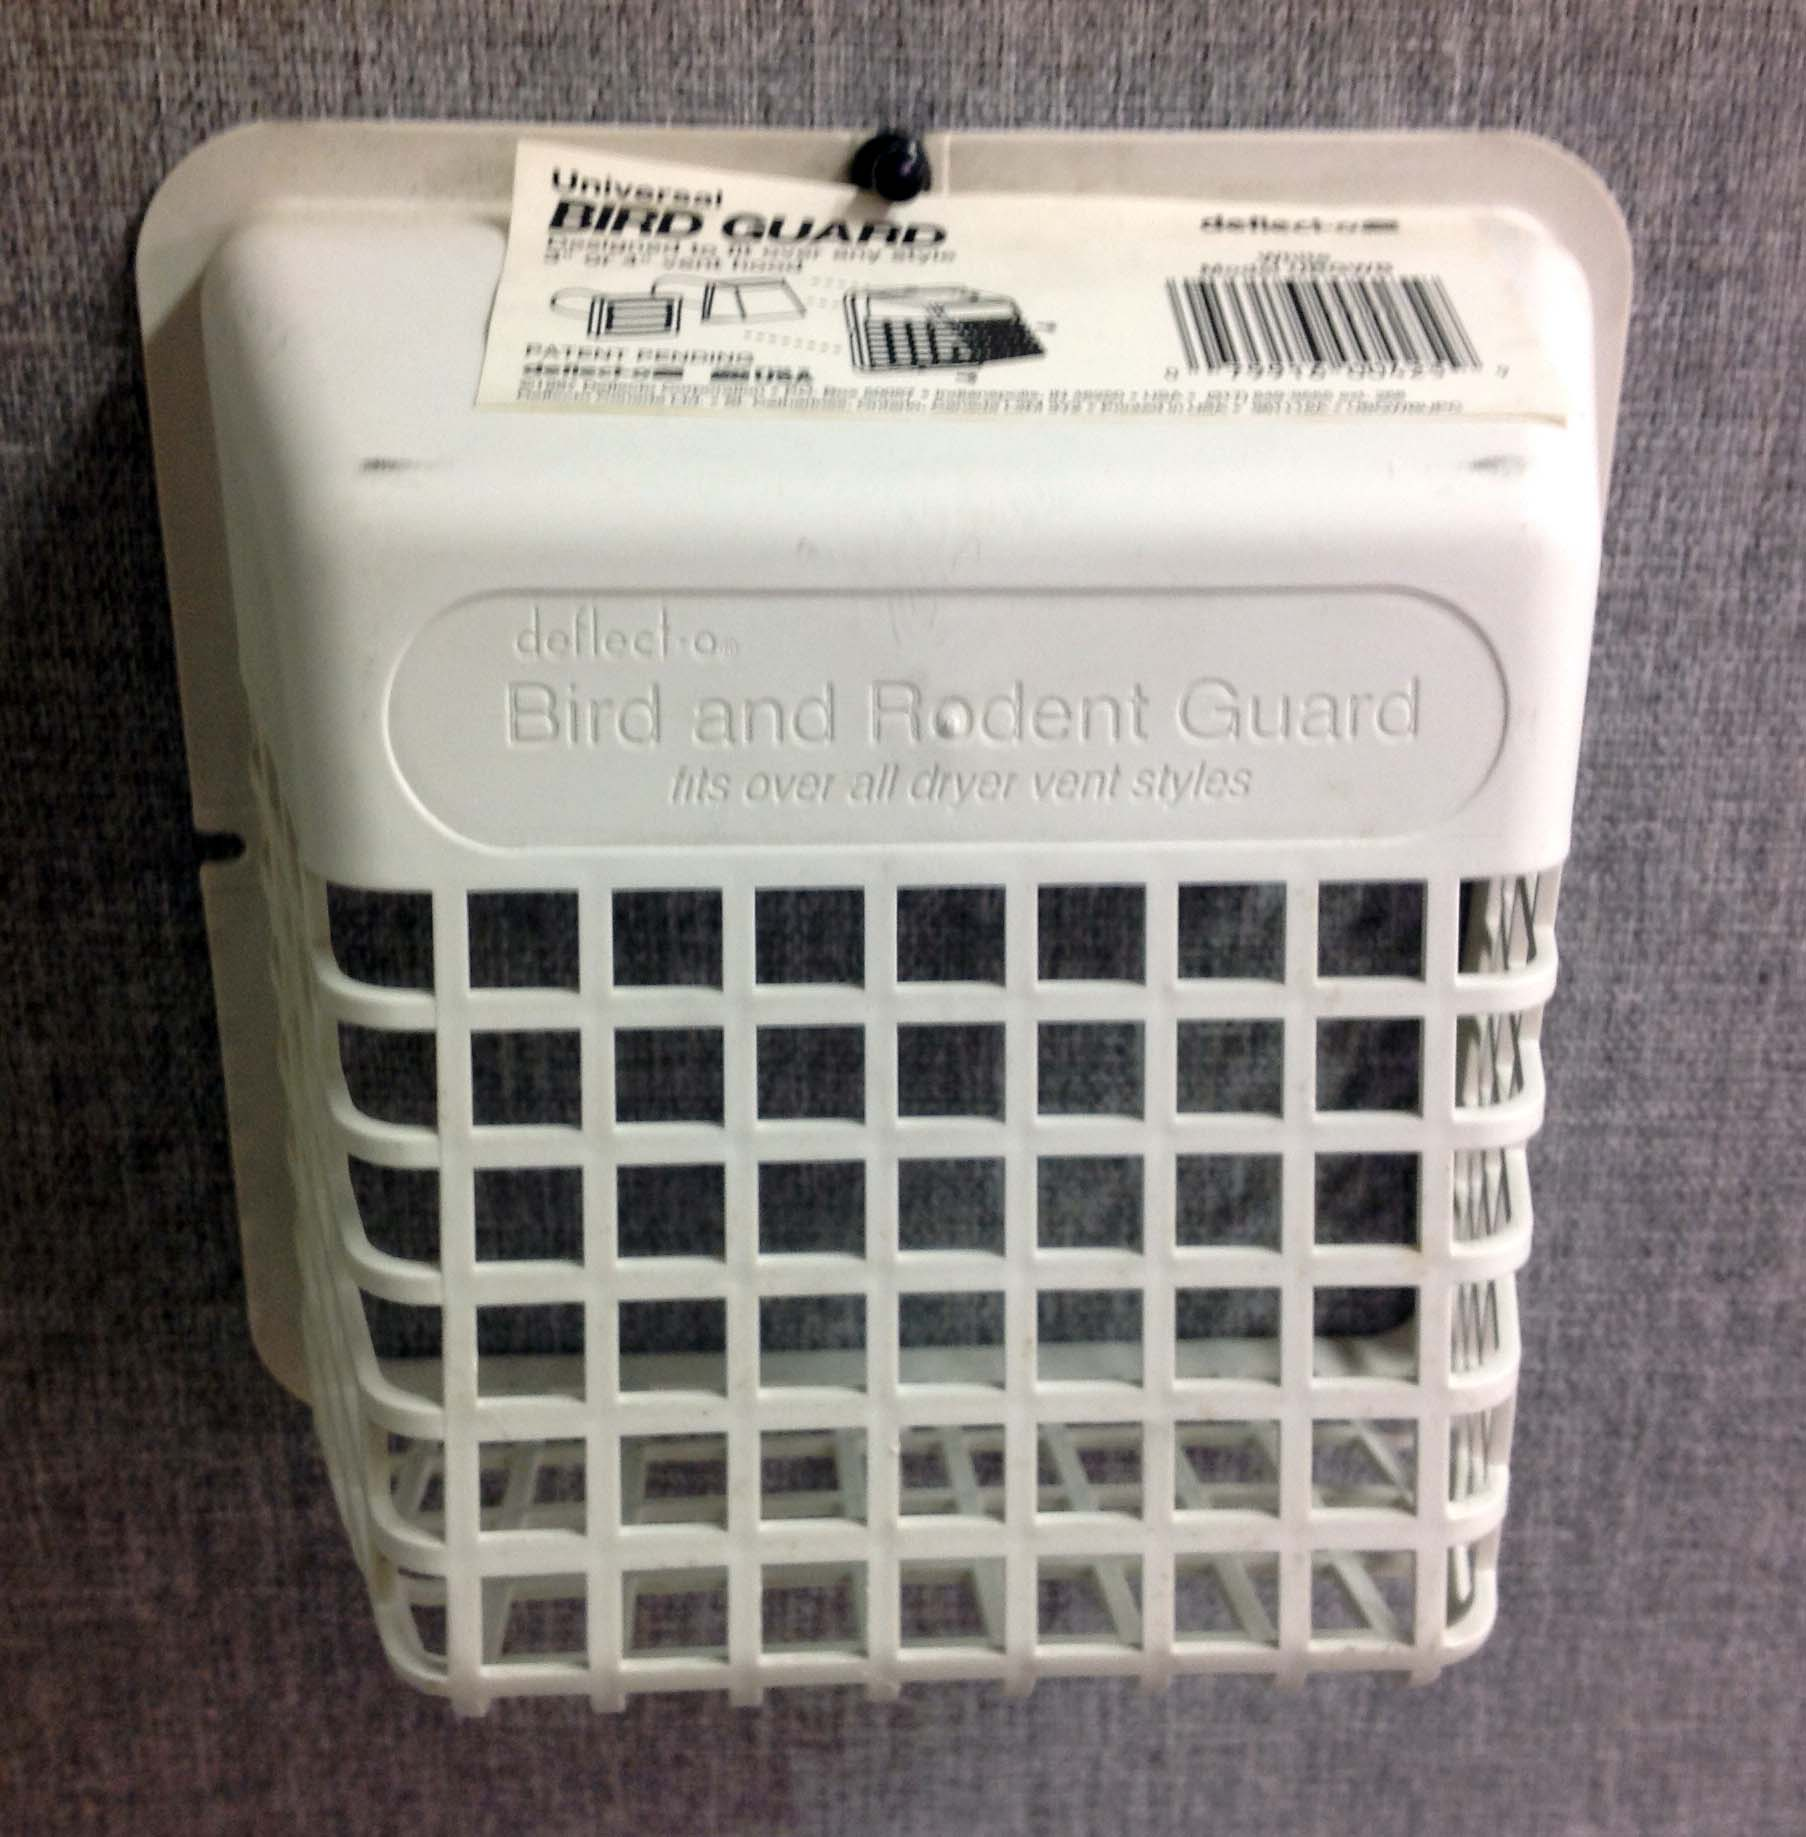 A tisket, a tasket, does your outdoor vent need a basket? City Wildlife is giving away vent baskets while the supply lasts. Call (202)882-1000.